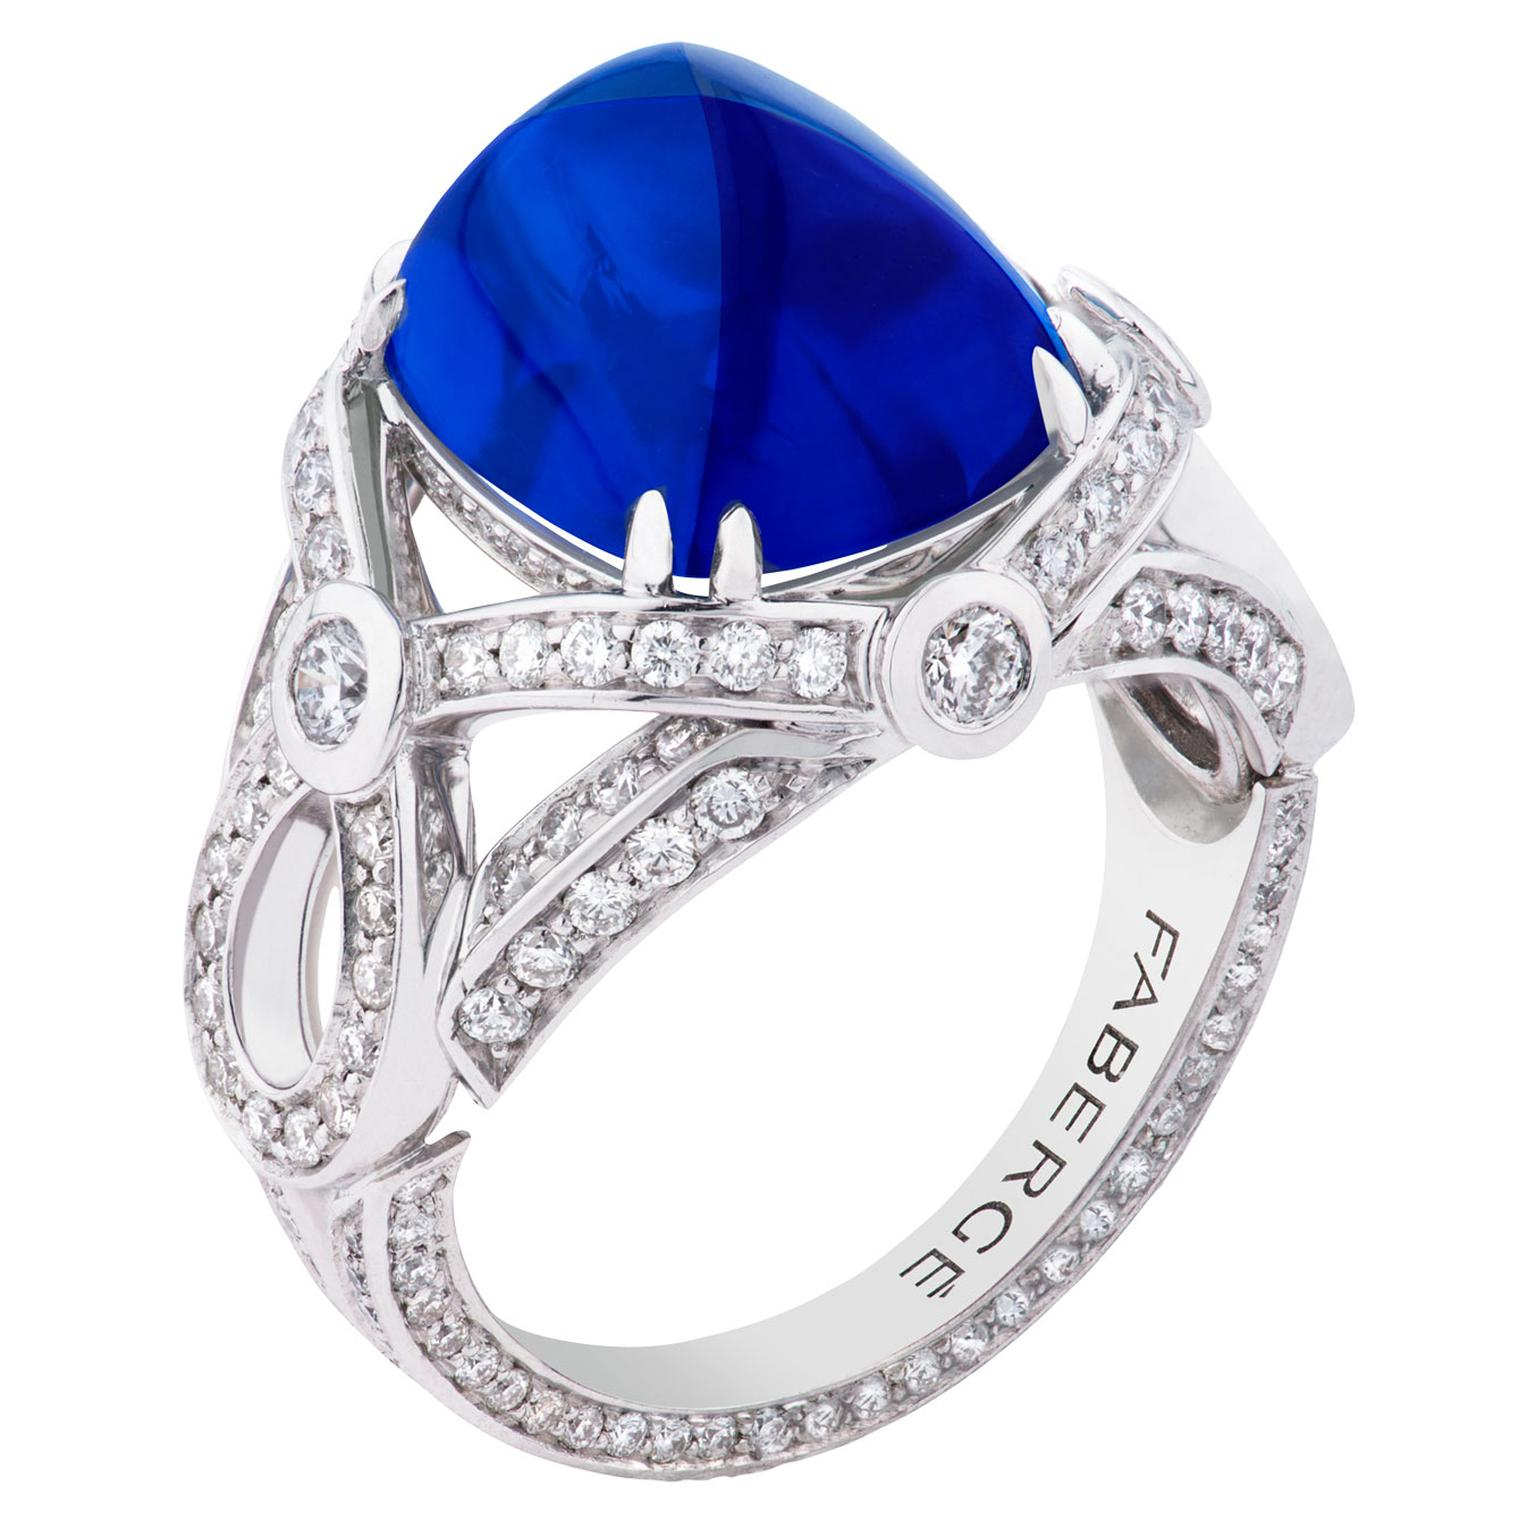 Faberg Devotion sapphire ring